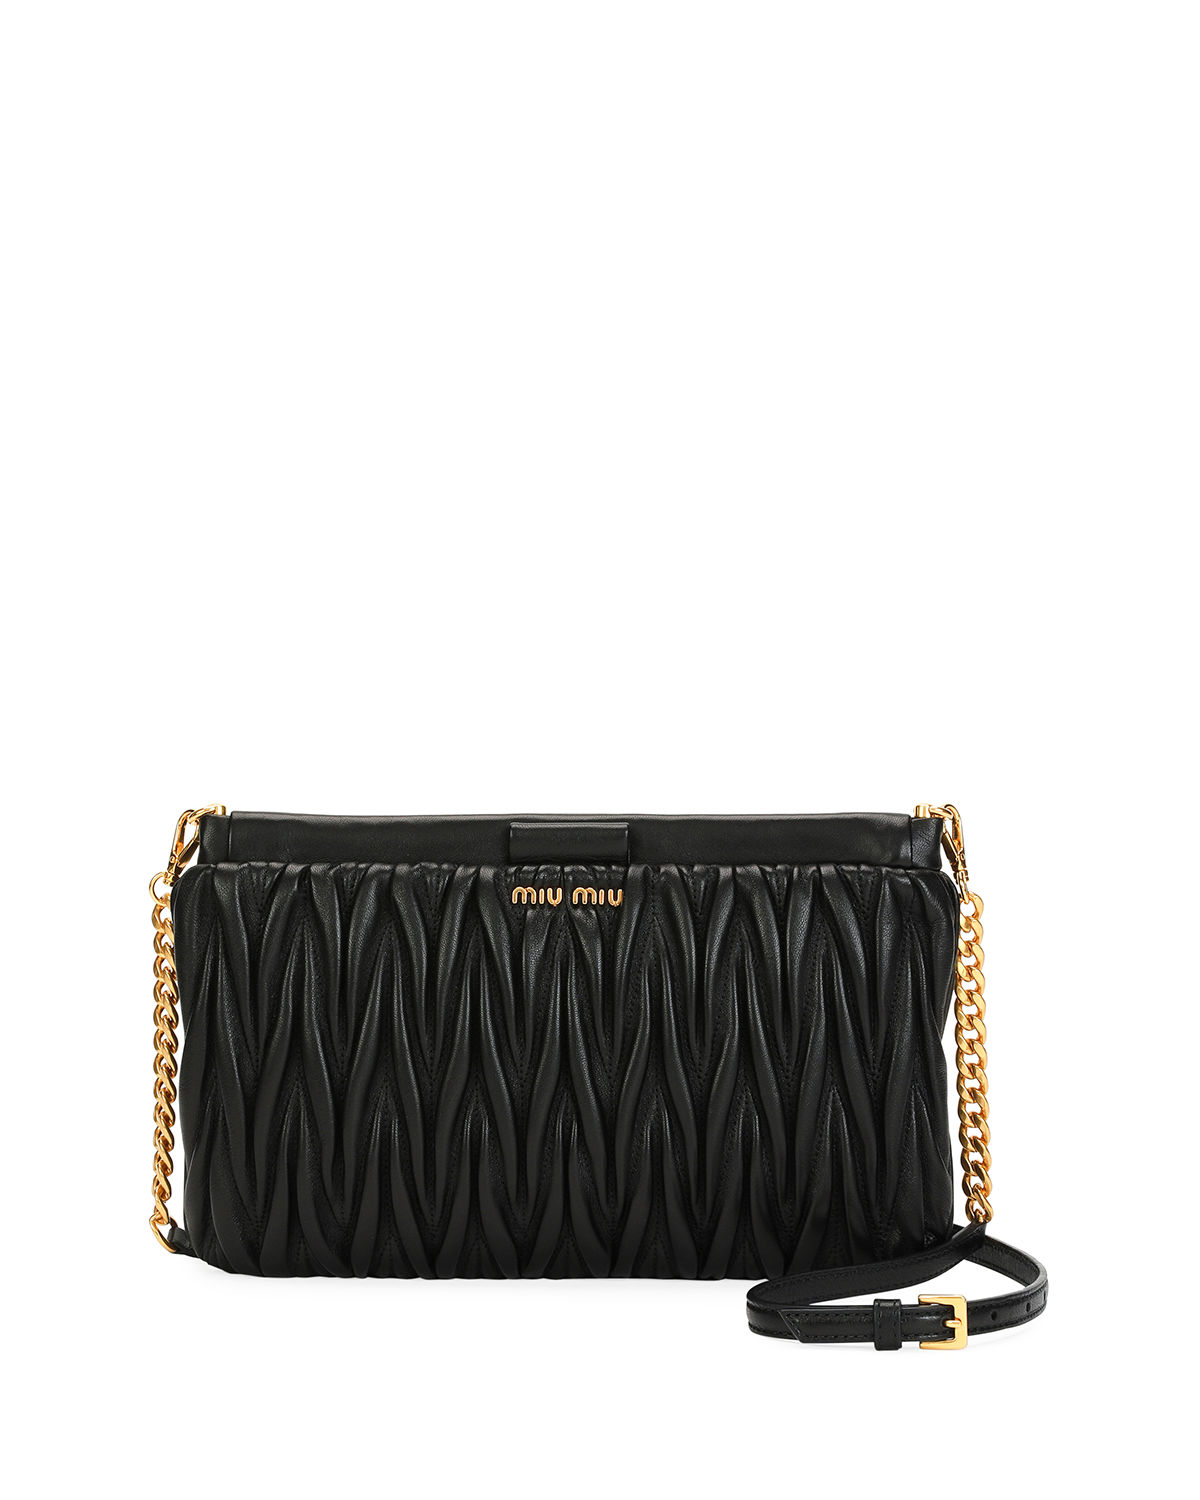 Miu Miu Matelasse Leather Clutch Crossbody Bag  e0fd7299e85ff